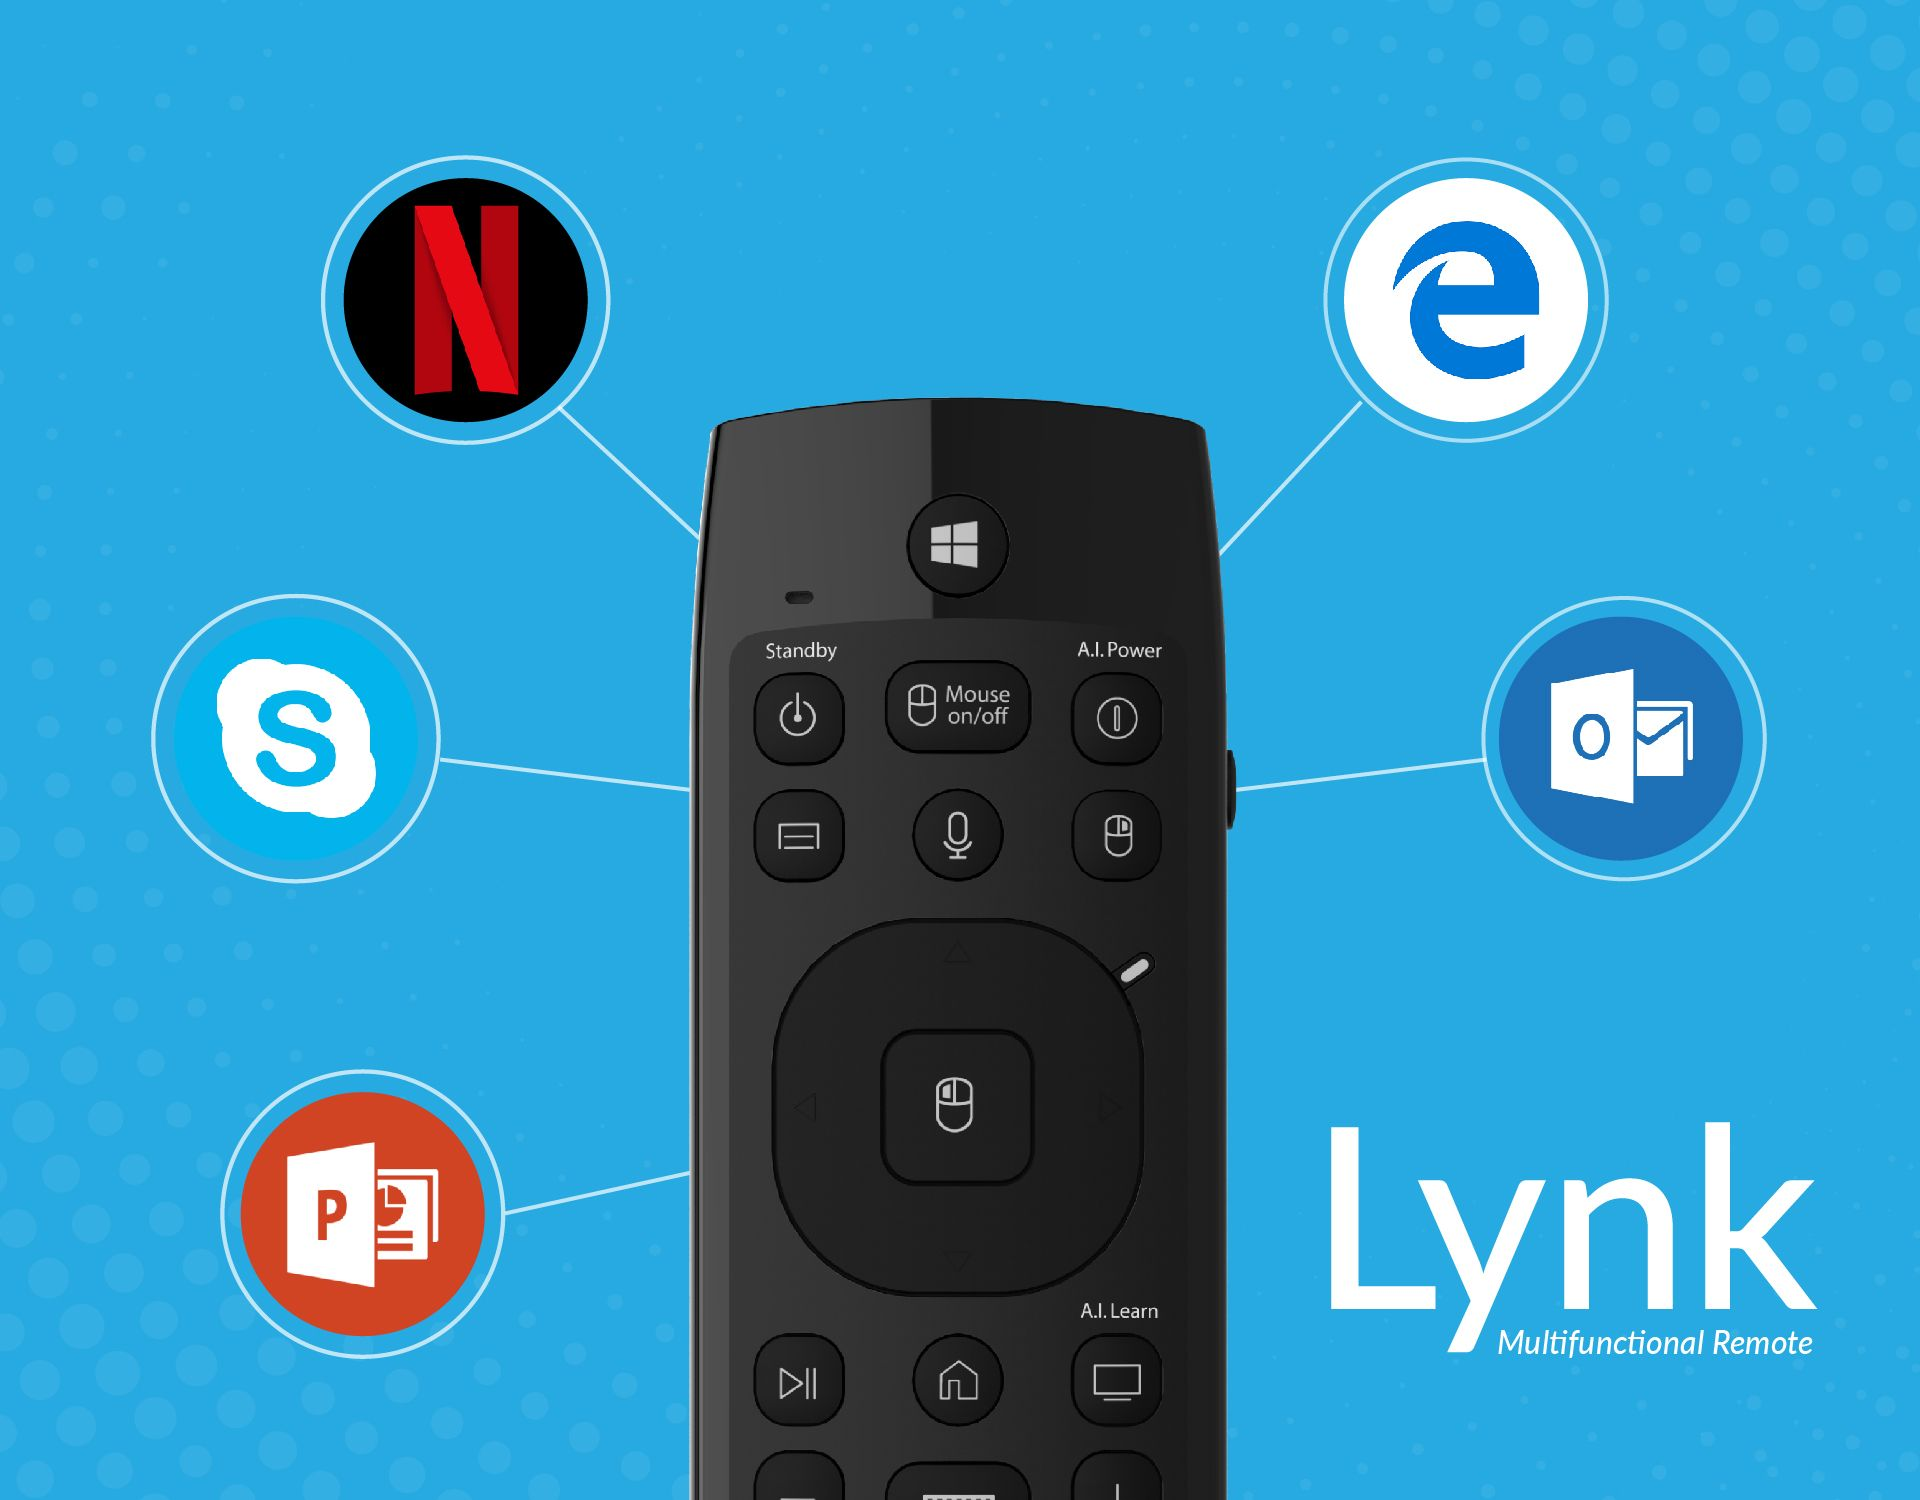 Best Apps for your Lynk MultiFunctional Remote Control